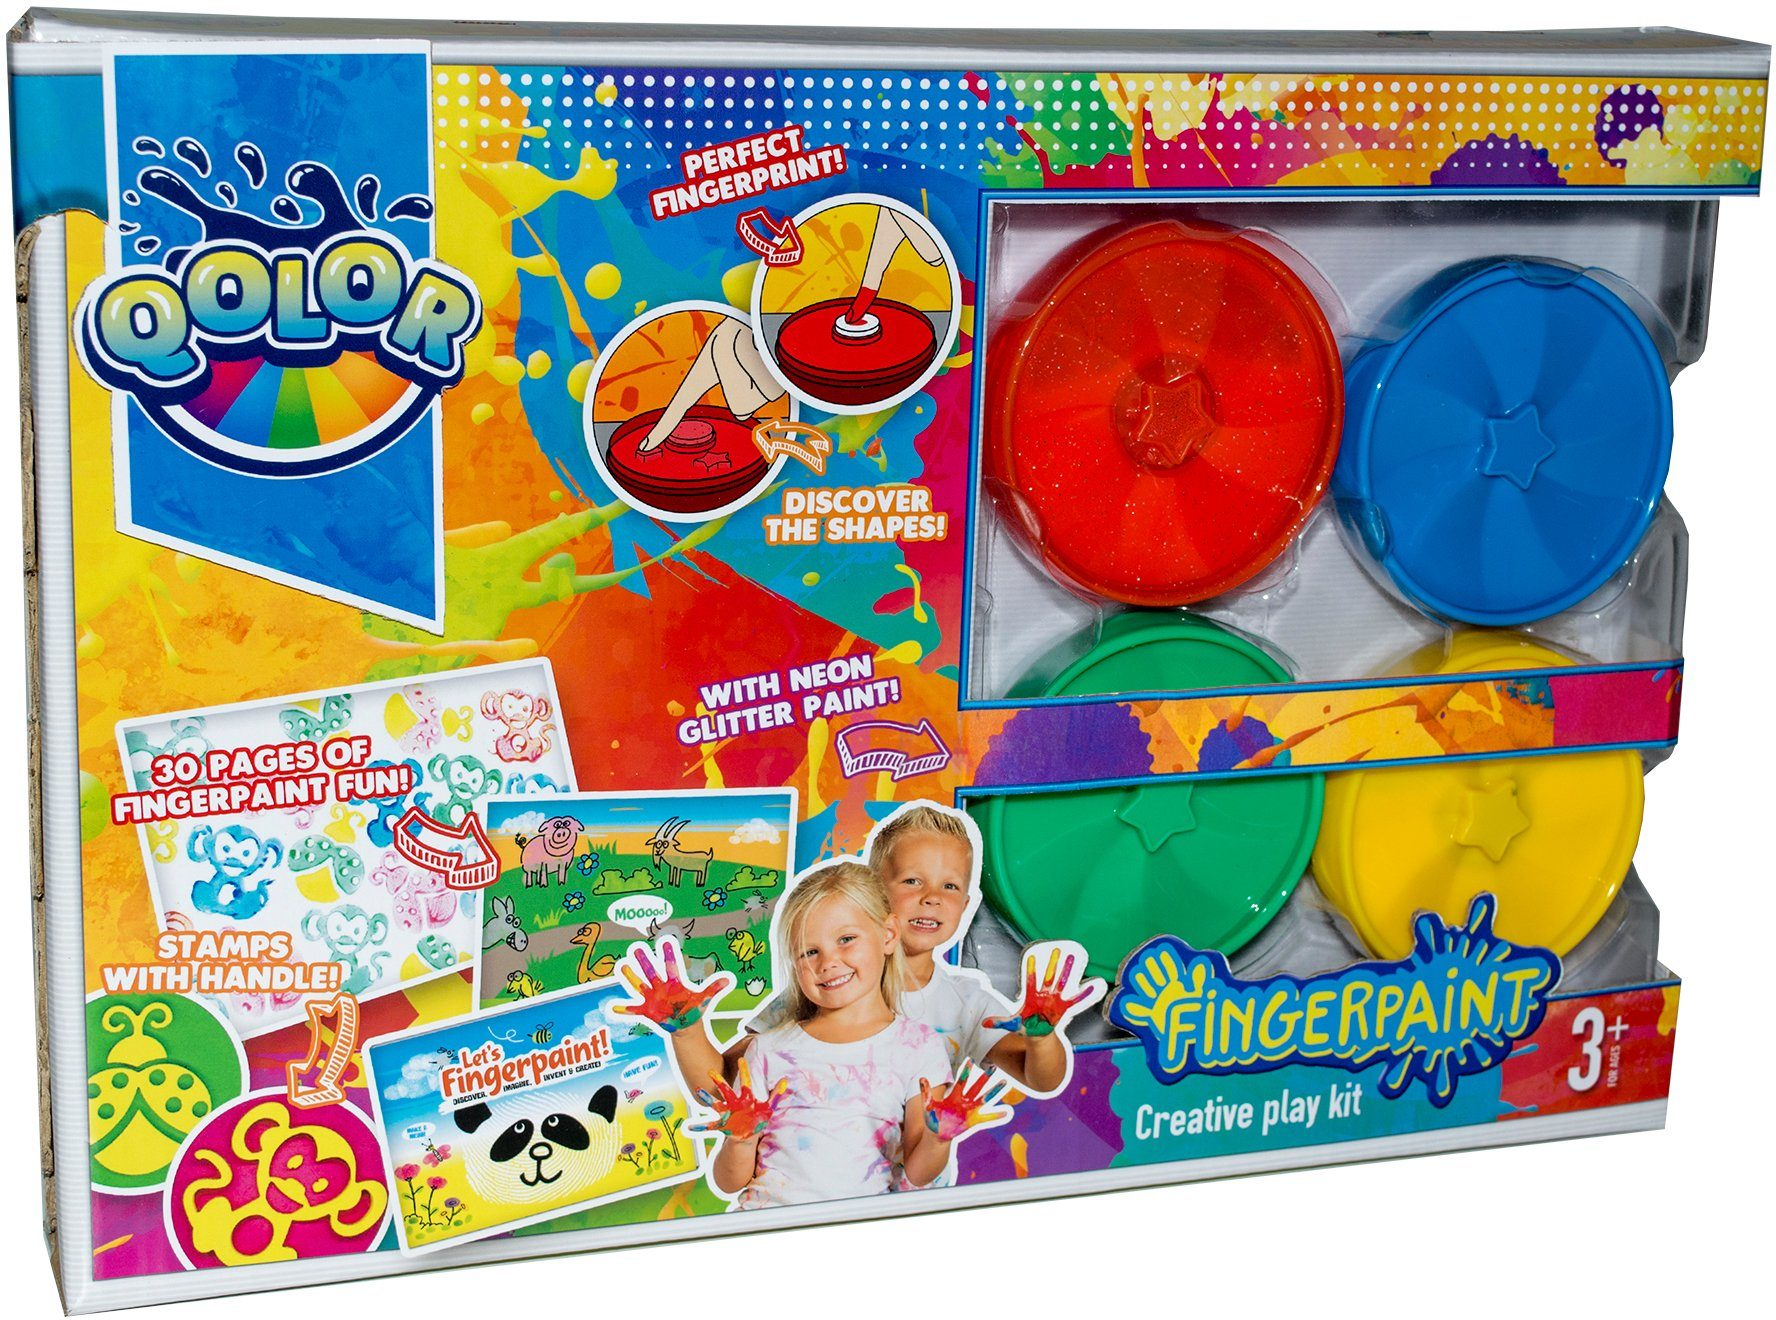 Fingerfarben Set mit Malbuch und Stempel, »Qolor Fingerpaint Creative play kit«